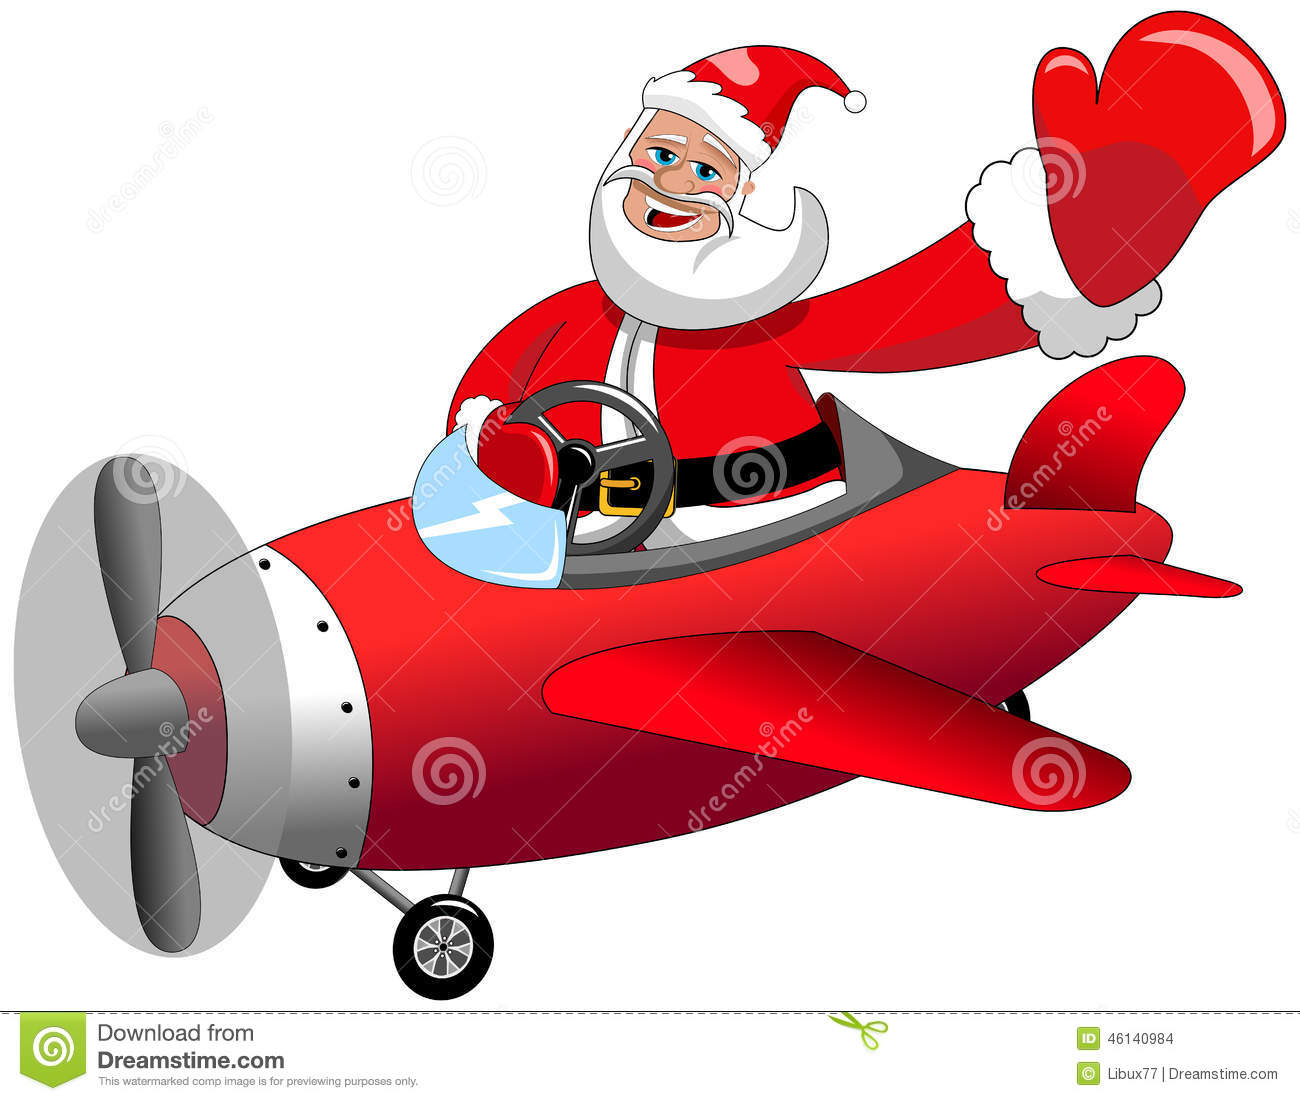 Santa Claus Flying Airplane Christmas Isolated